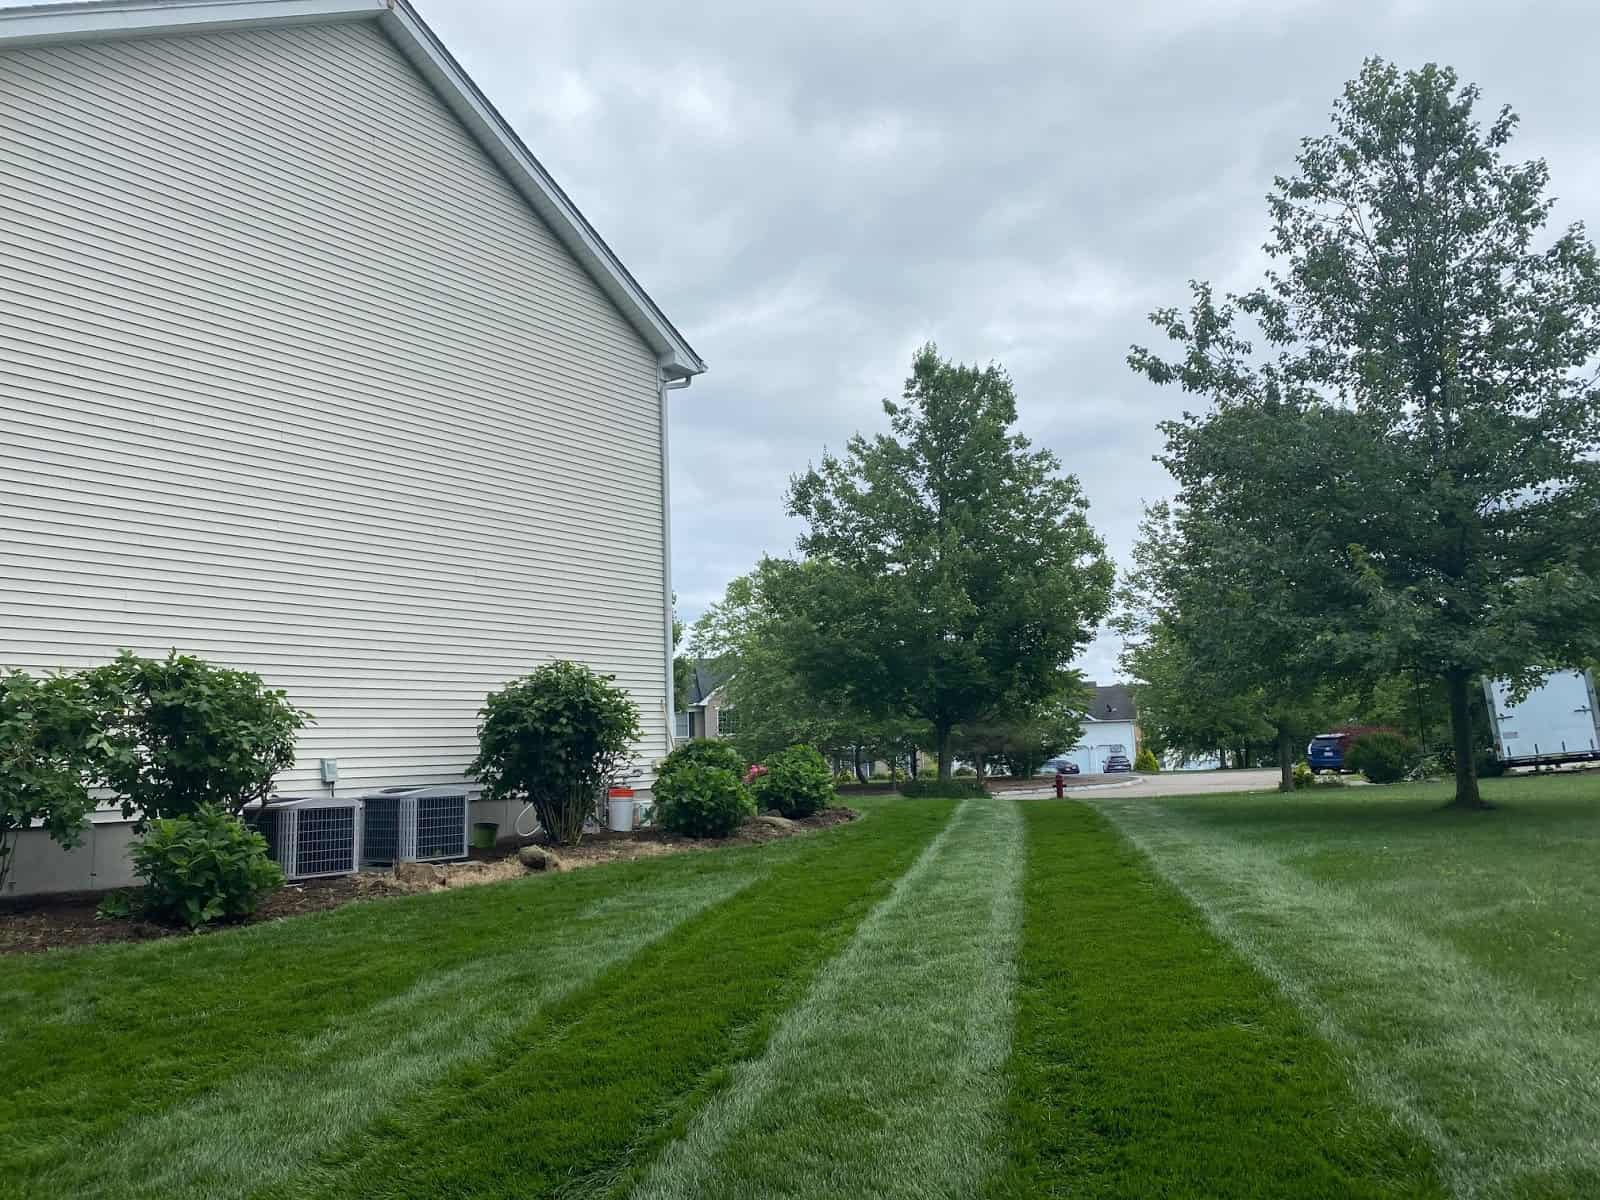 Stress Free Lawn in Summer 2